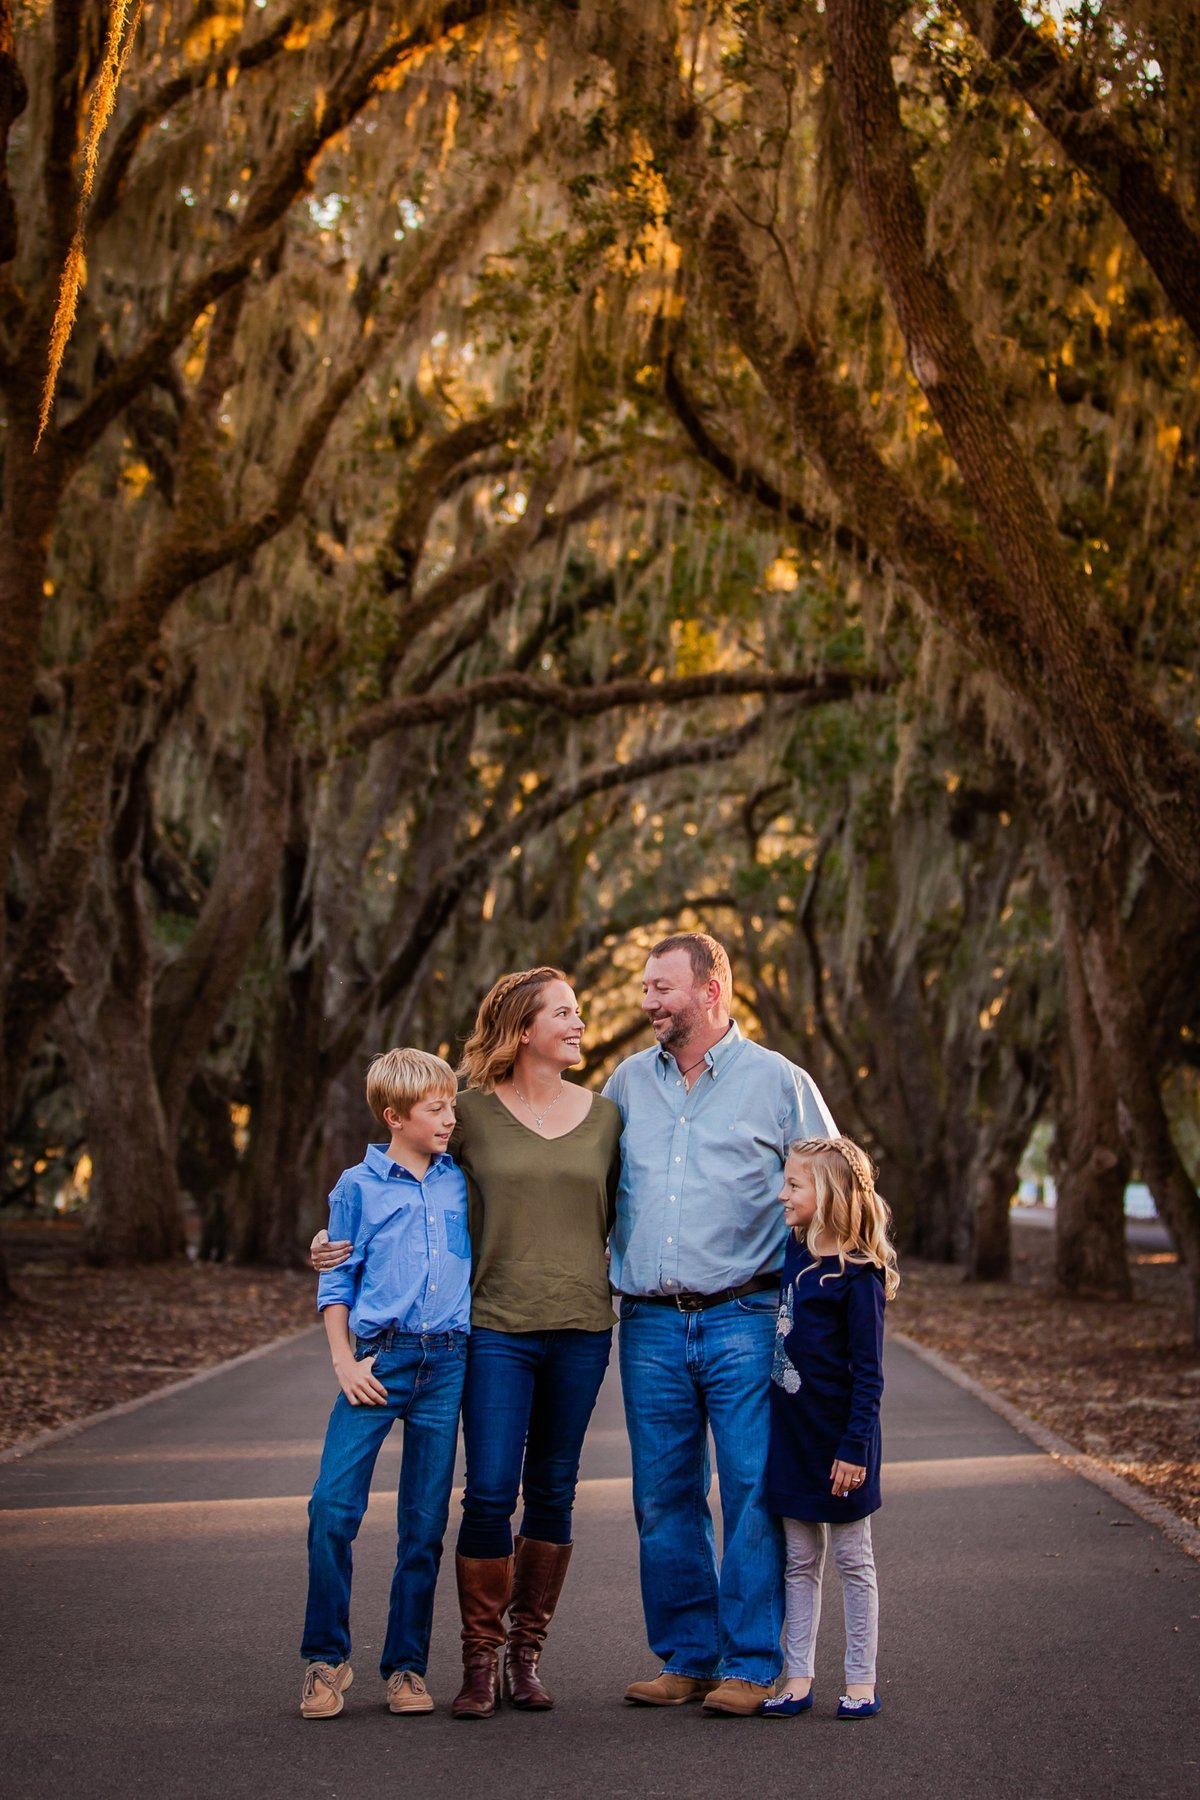 Bluffton and Hilton Head Portrait Photographer www.sylviaschutzphotography.com